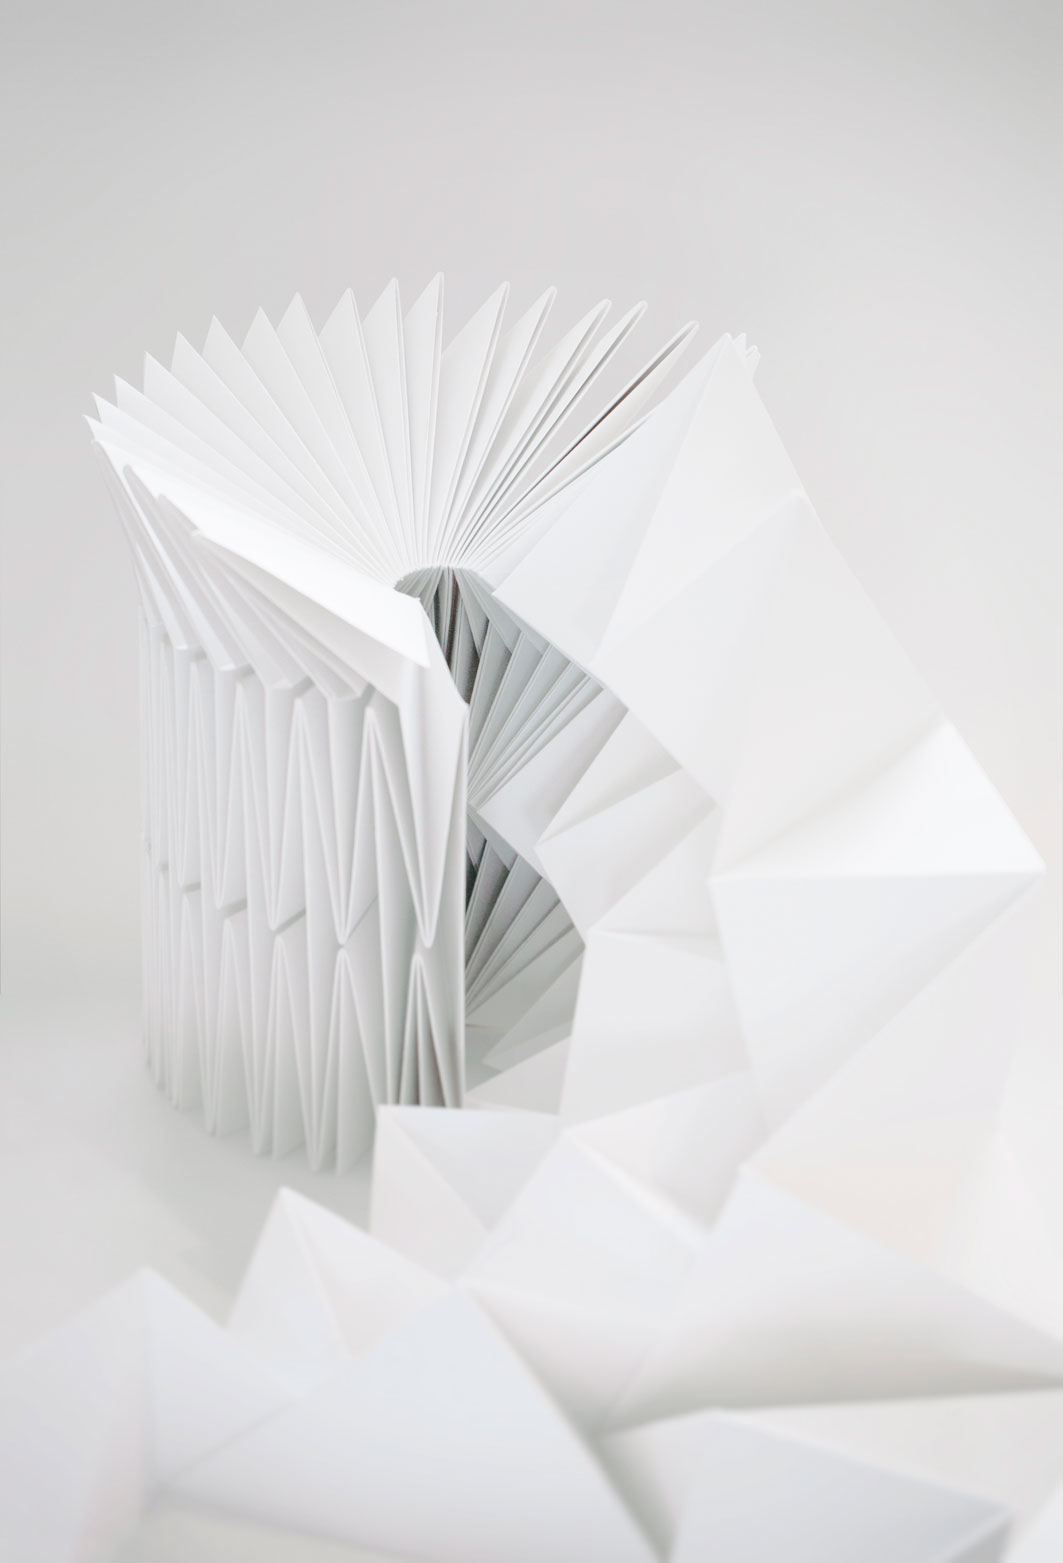 SA seat in paper folded as tessellations. Construction interlocks. Nine meter handfolded paper. 2010